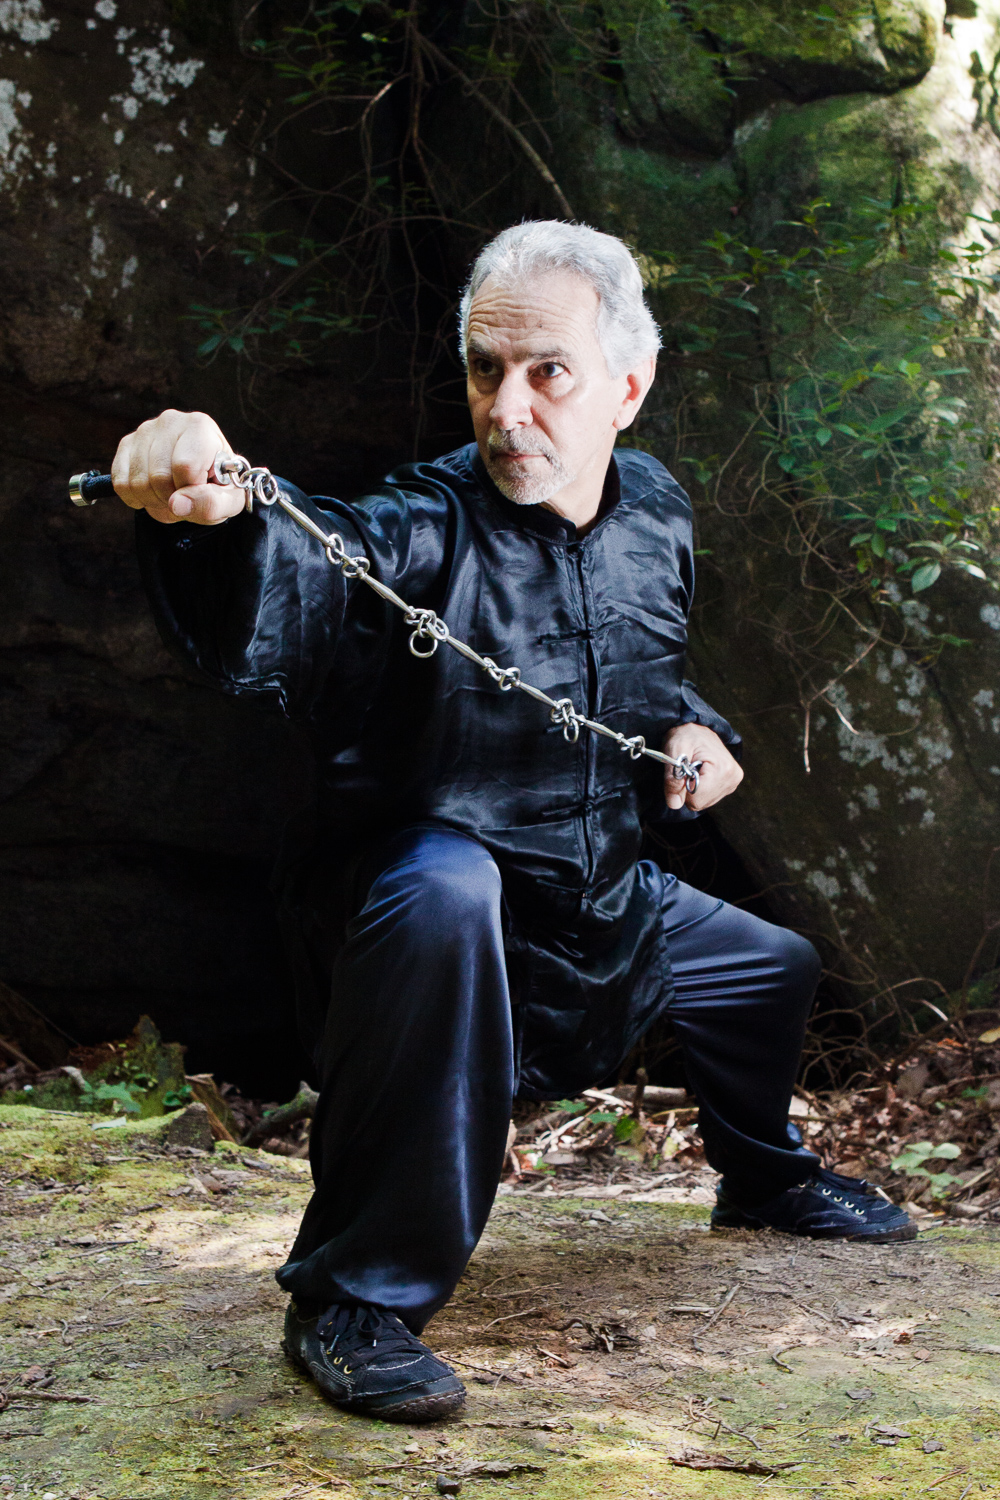 Sifu Paolillo with chain whip, 2012